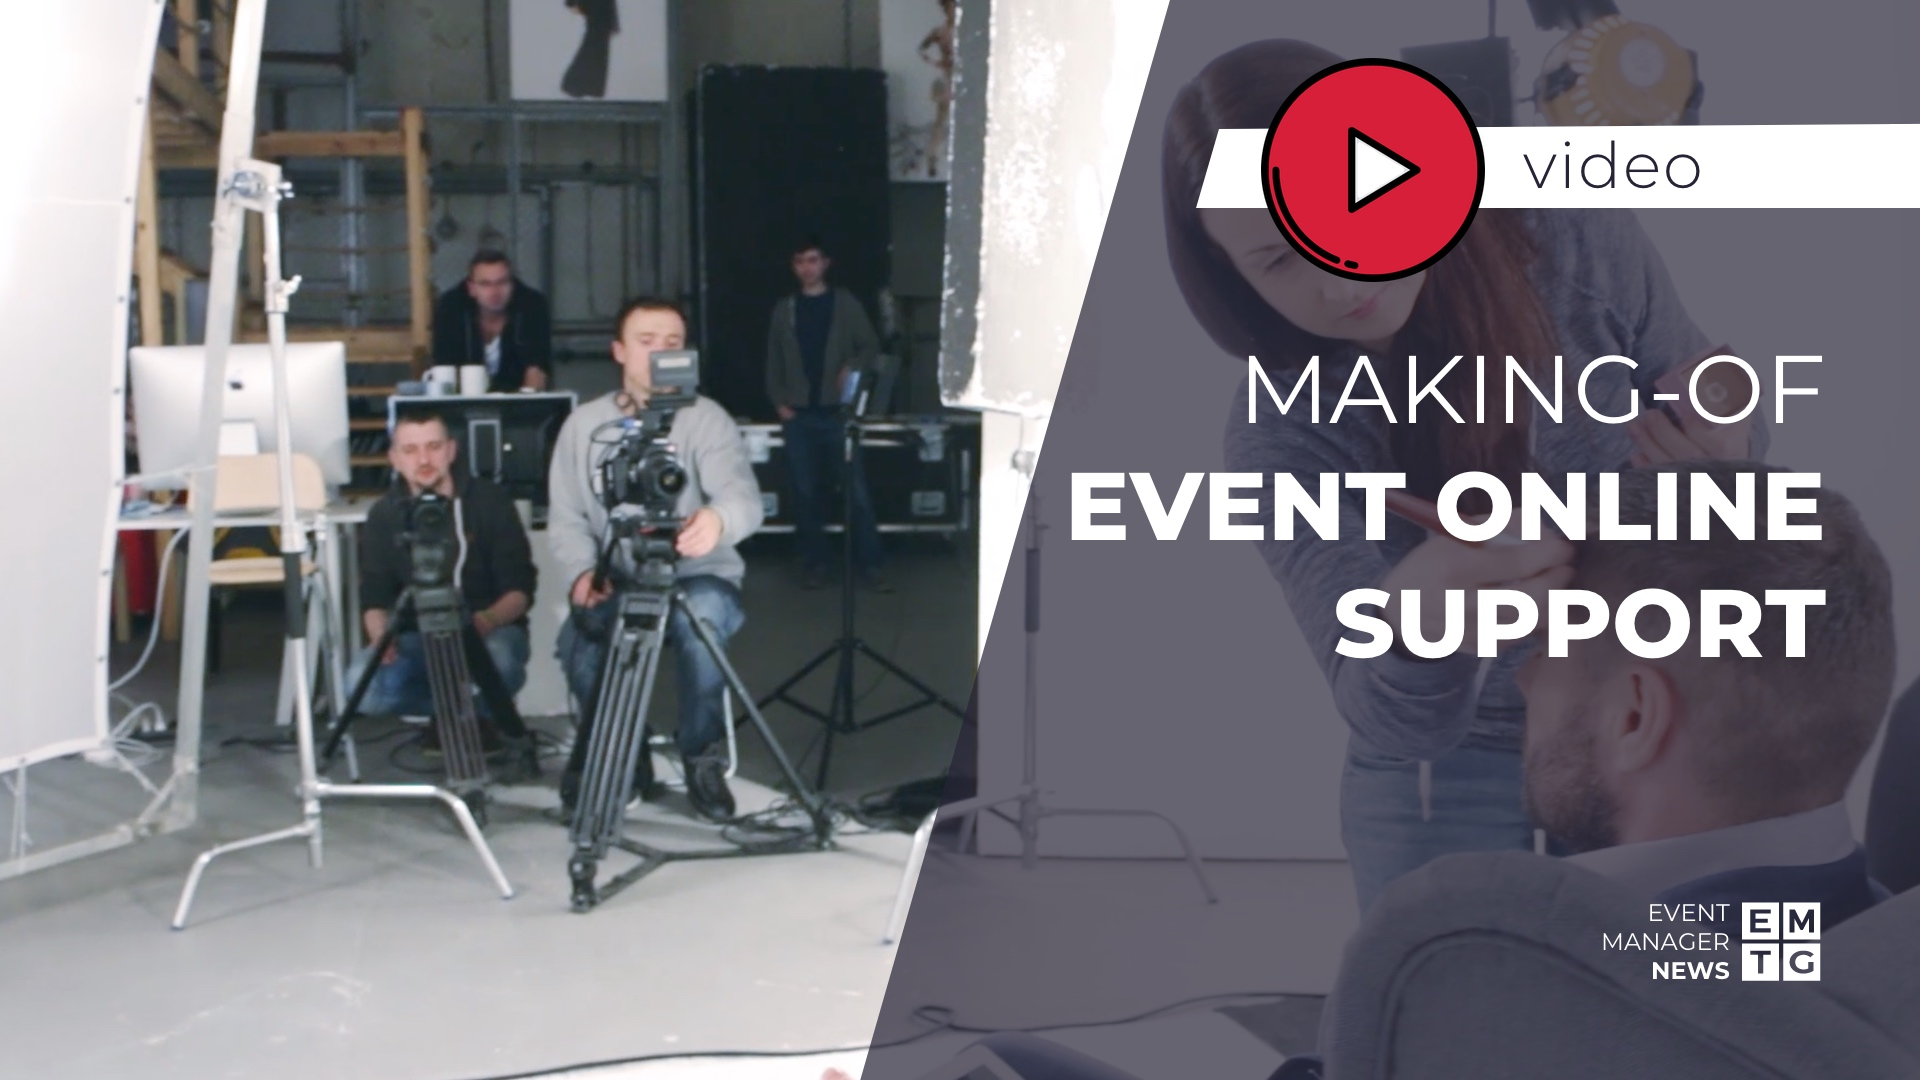 Making-of Event Online Support